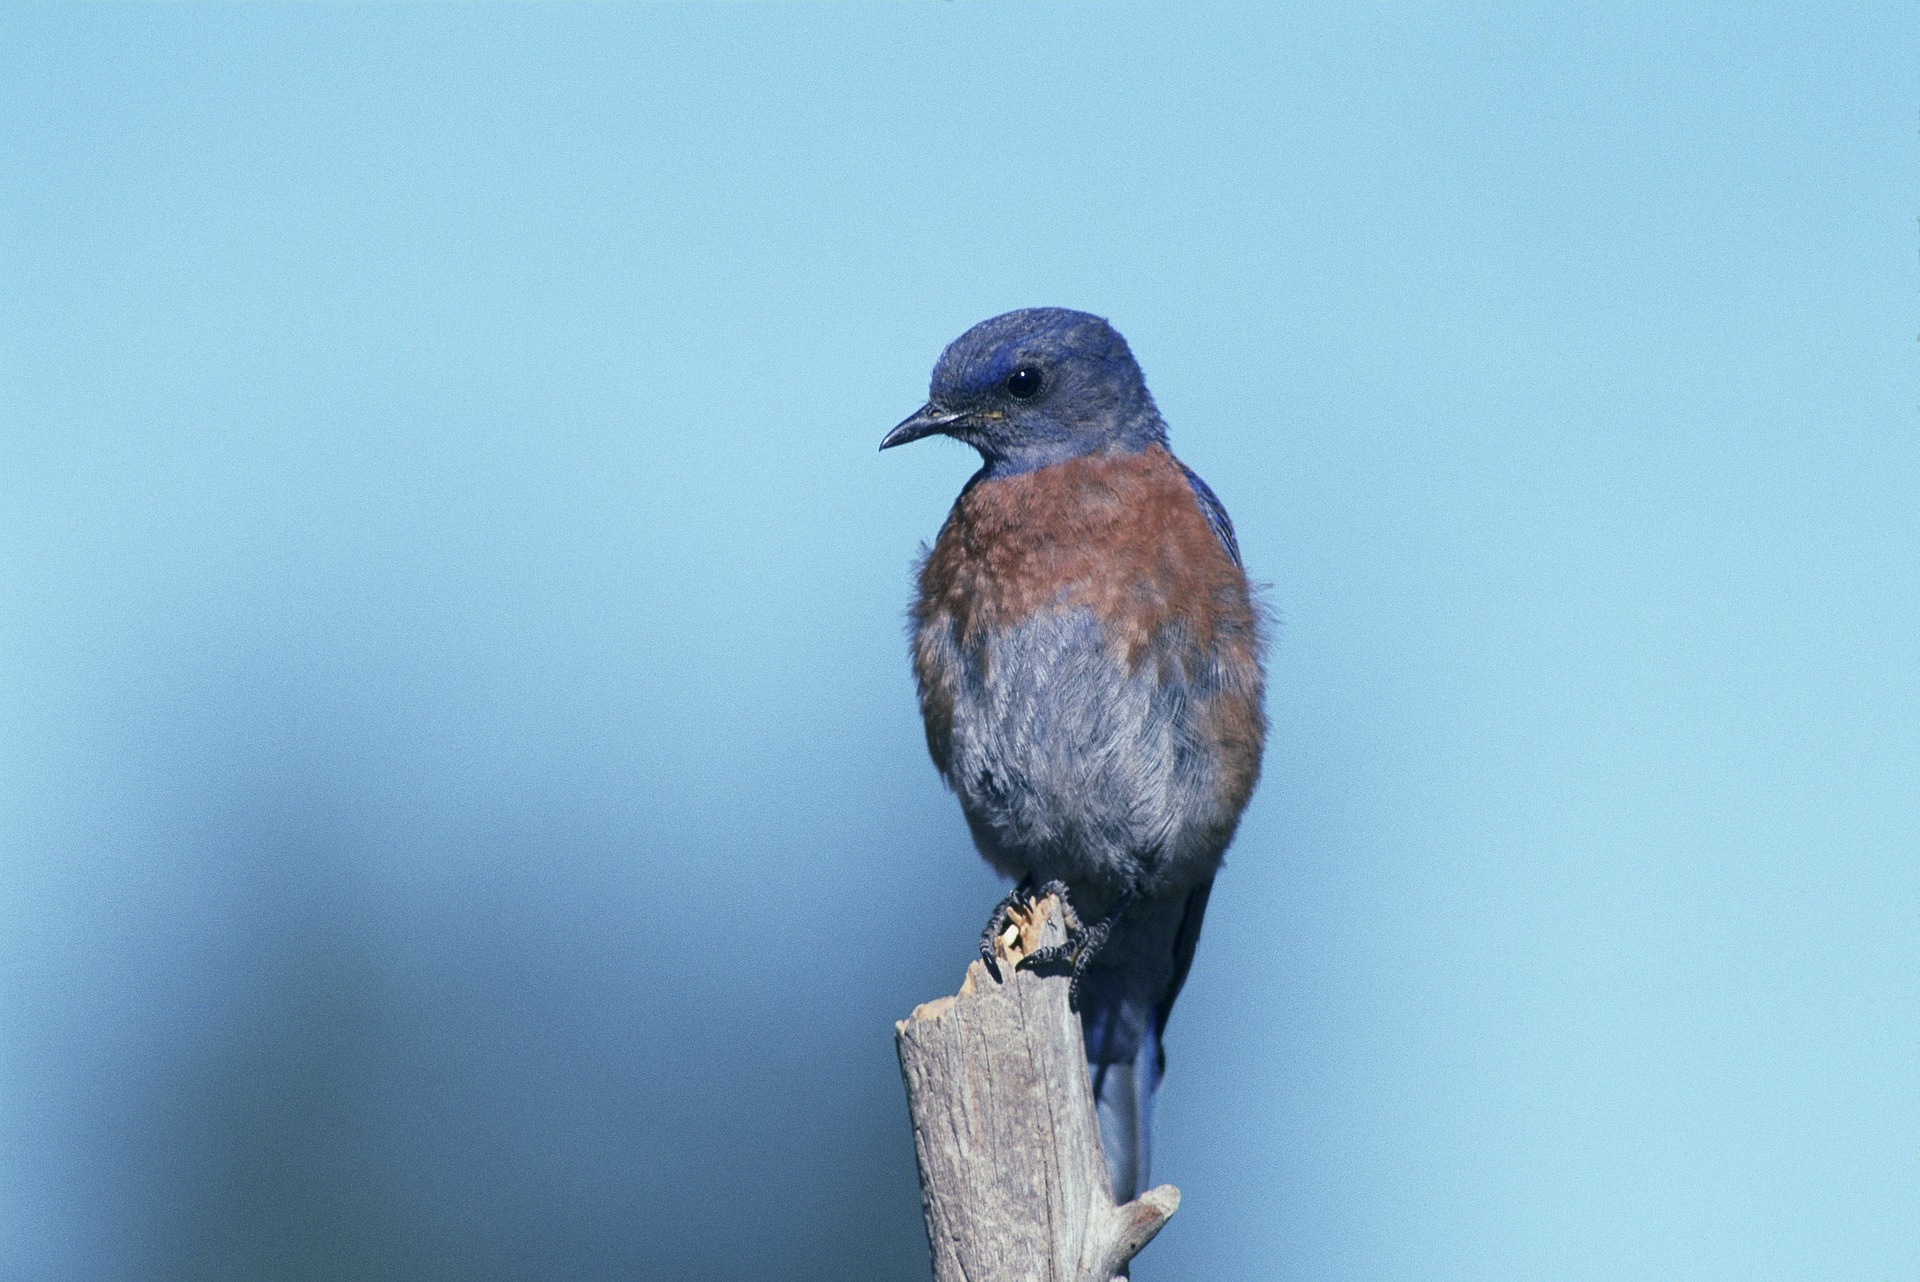 Western Bluebird, Animal, Bird, Blue, Nature, HQ Photo